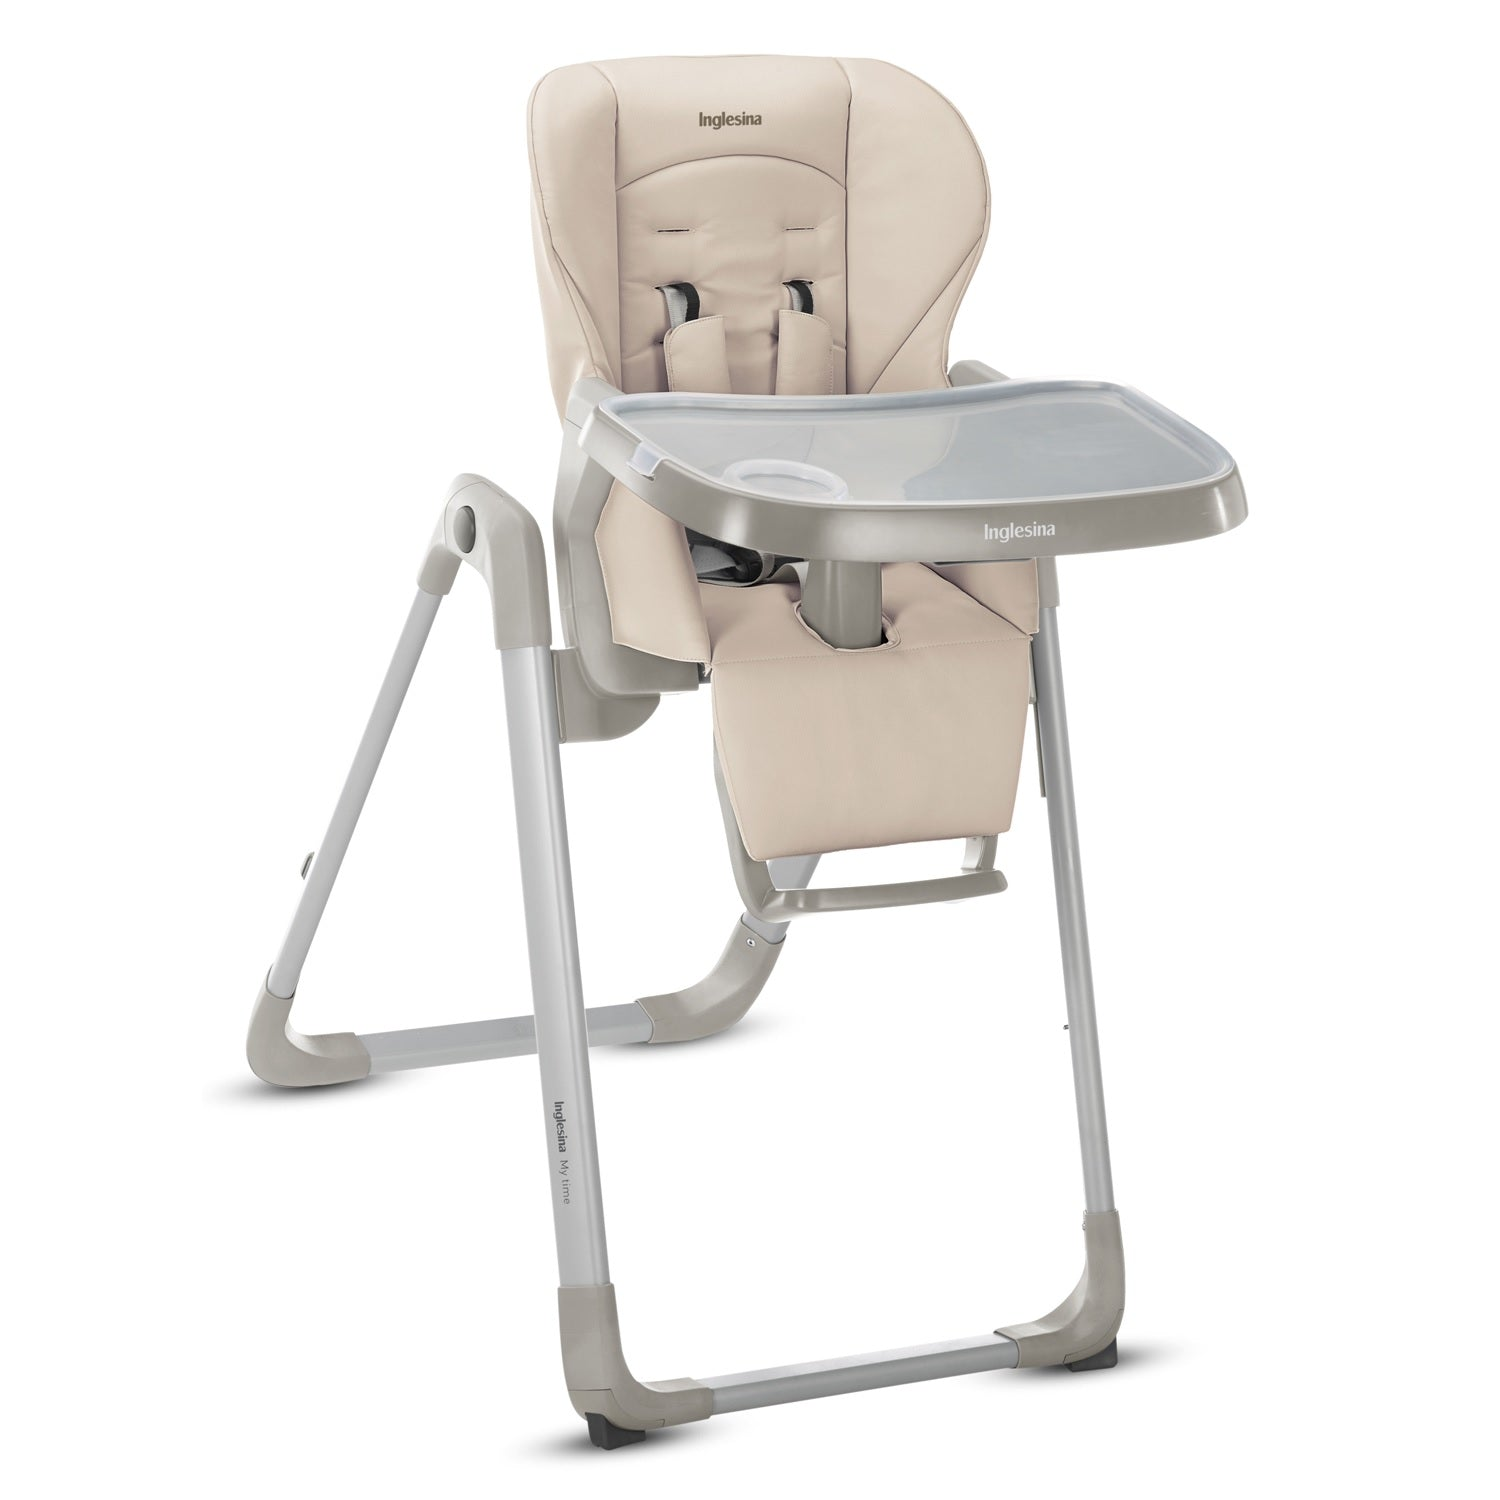 Wondrous Inglesina Mytime High Chair Ibusinesslaw Wood Chair Design Ideas Ibusinesslaworg